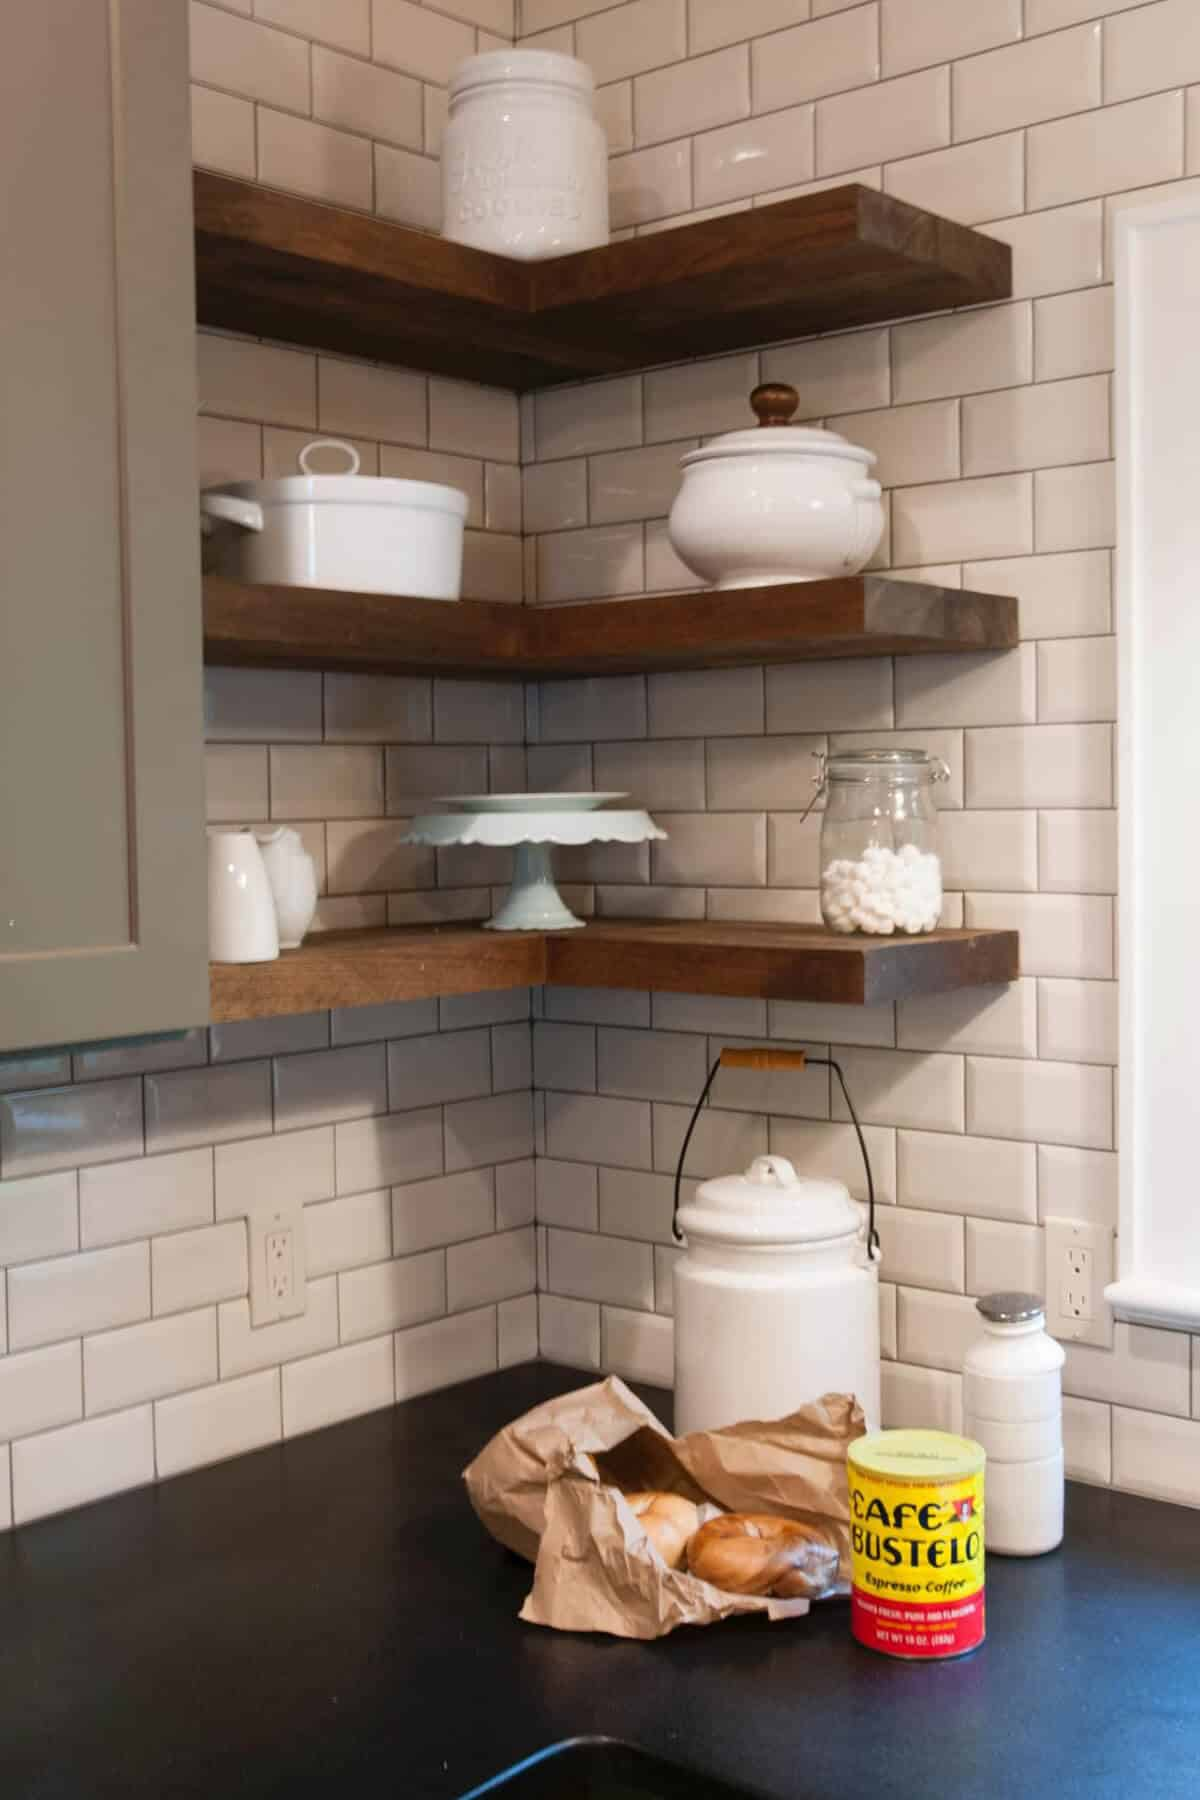 I like the natural wood floating shelves against the shiny subway tile backsplash.